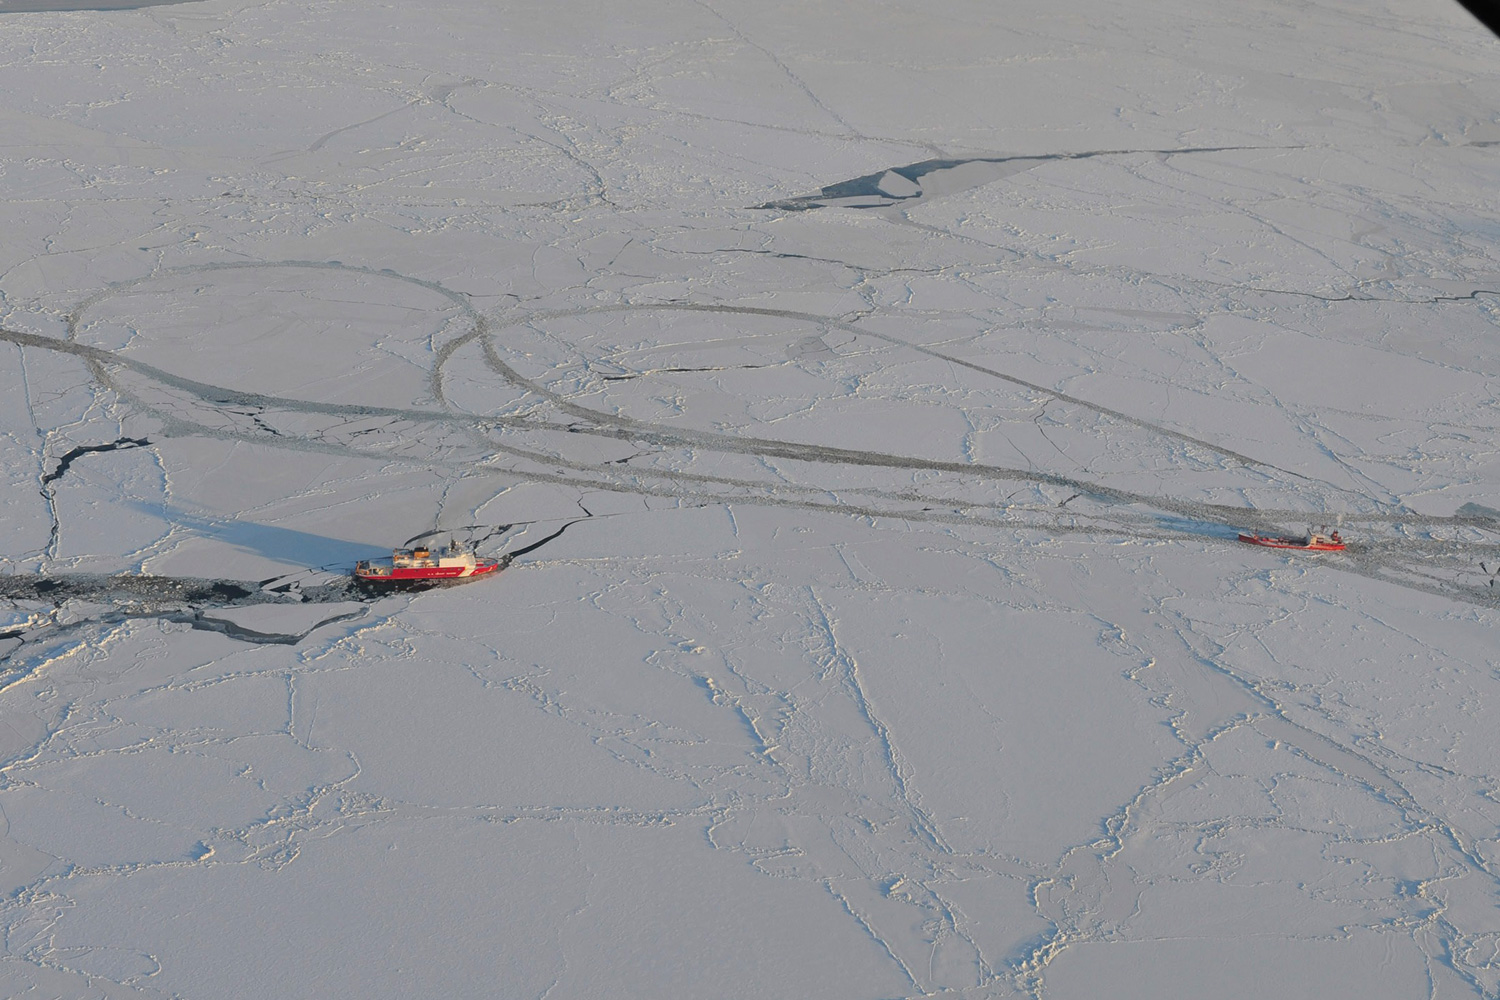 January 8, 2012. U.S. Coast Guard Cutter Healy breaks through the Bering Sea ice, 266 km (165 miles) south of Nome, Alaska, on a return path to break ice up around the Russian-flagged tanker Renda. The Seattle-based Healy is escorting the Renda as it carries more than 1.3 million gallons of fuel to help the residents of Nome make it through the winter.